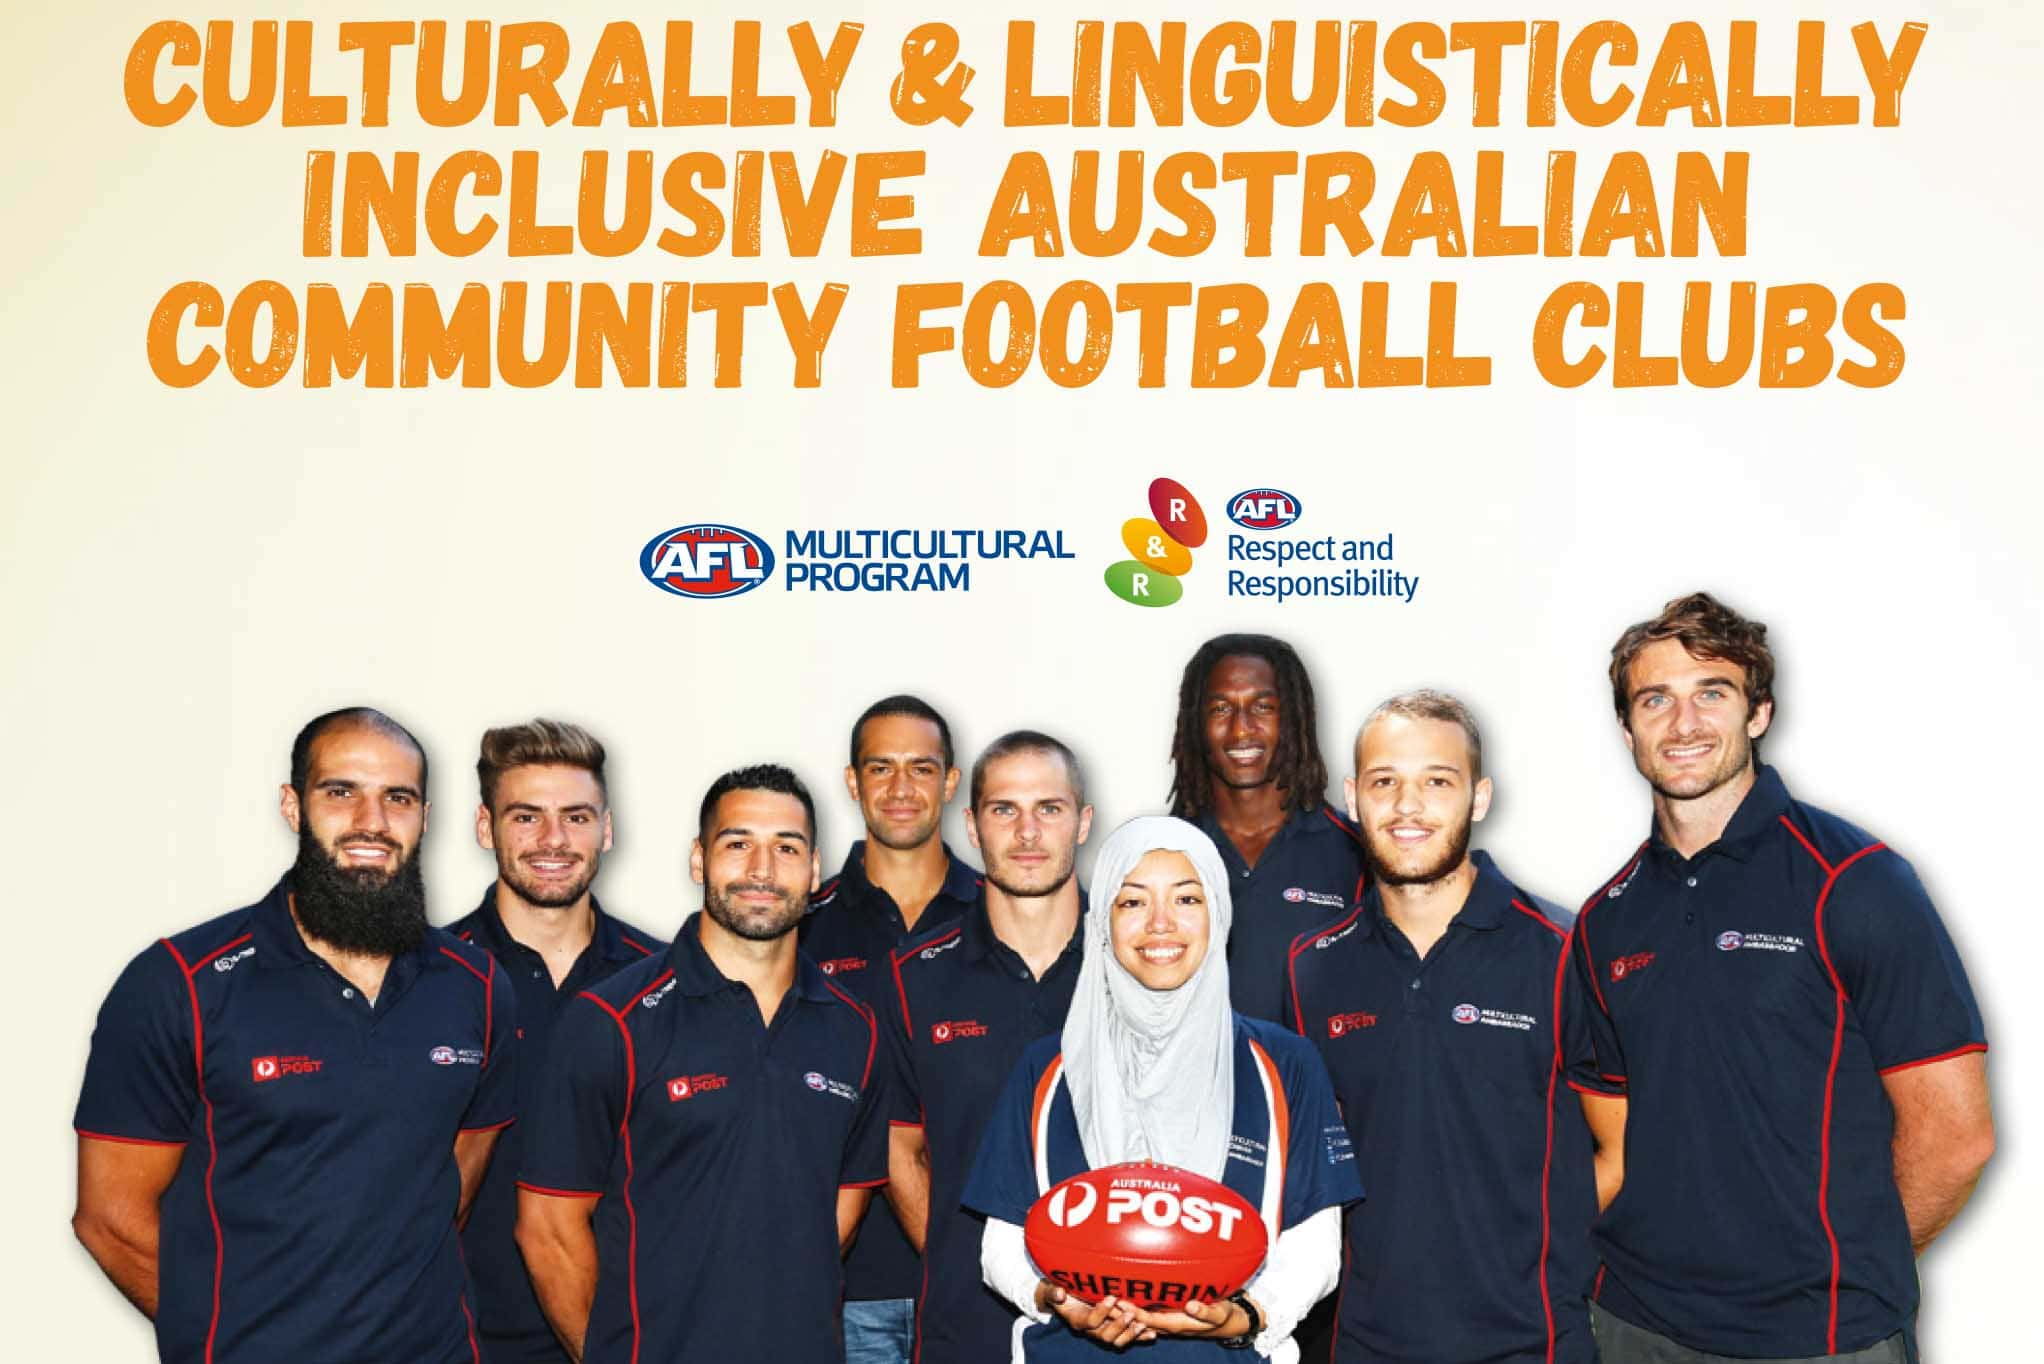 Image of a group of smiling AFL players standing with a young woman wearing a headscarf holding a AFL football. Text reads Culturally and Linguistically inclusive Australian community football clubs. AFL logo is below text.